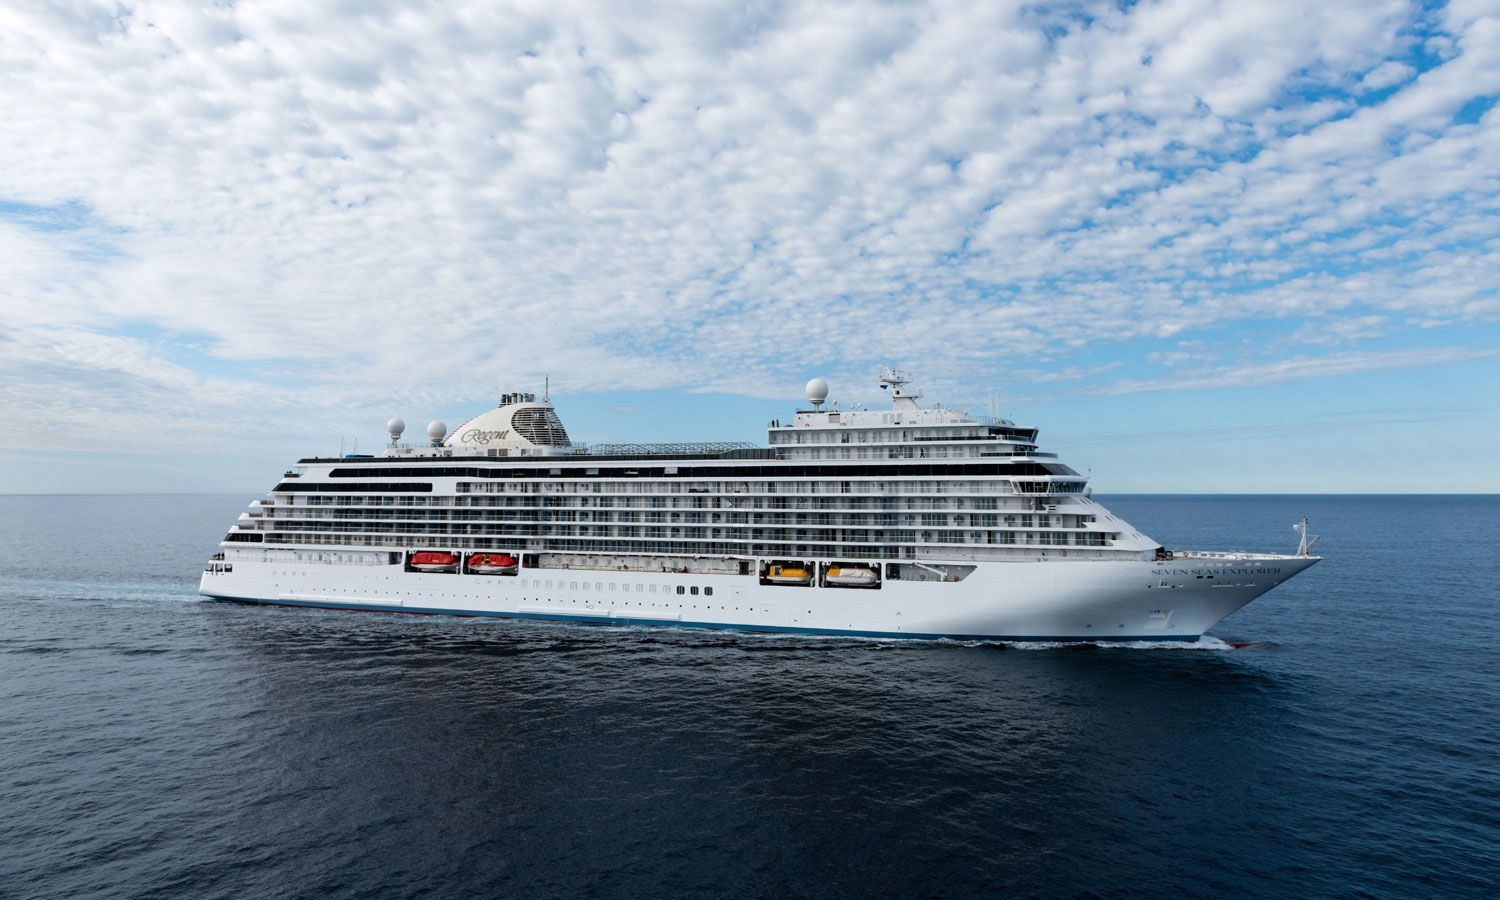 Set Sail On The World's Most Luxurious Cruise